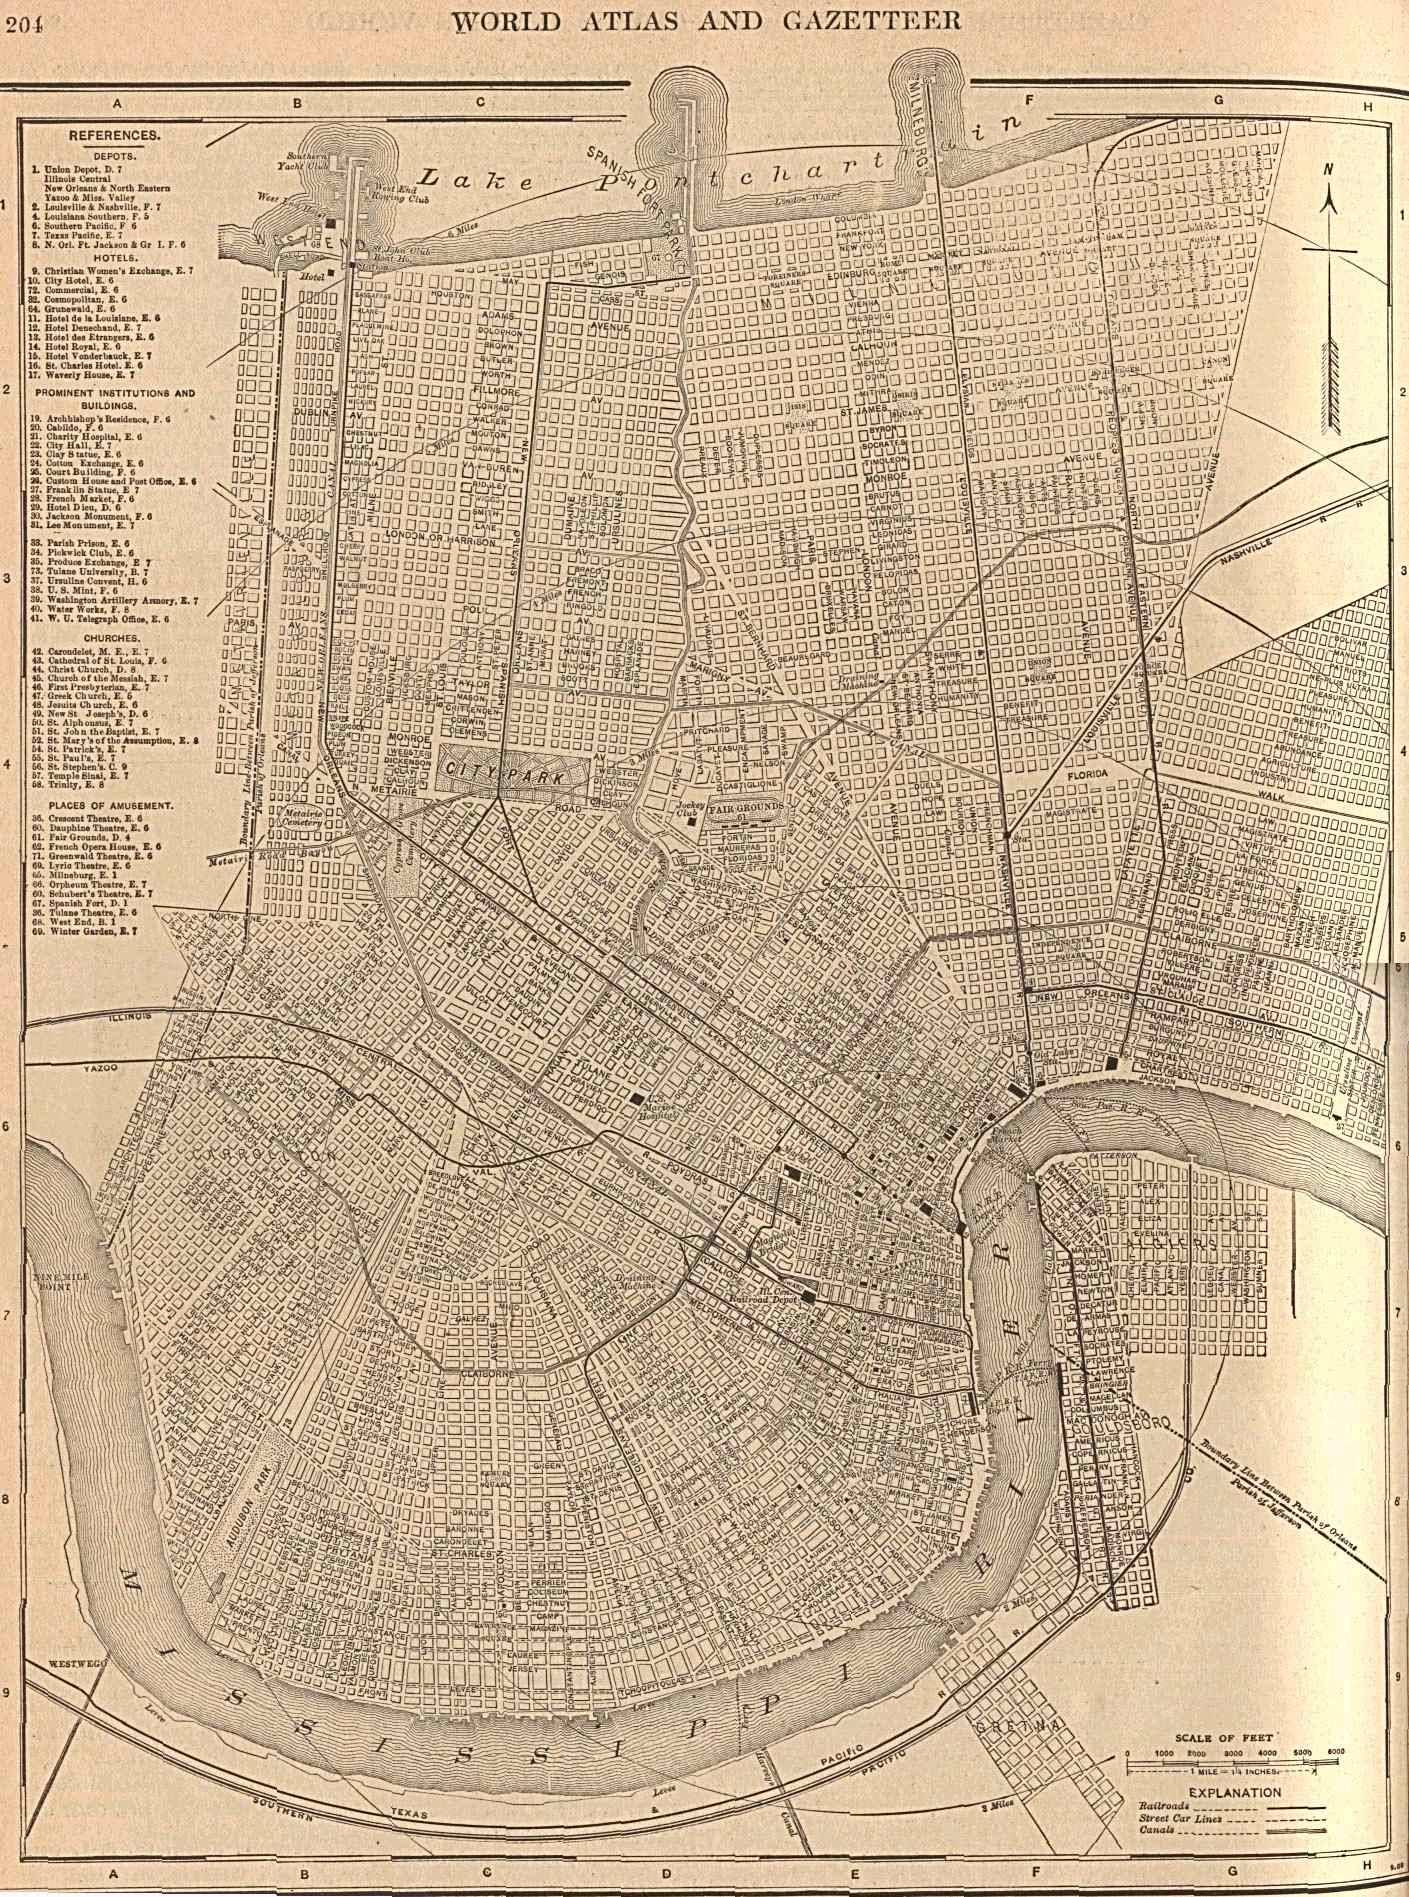 1908 map showing West End, Spanish Fort, & Milneburg.